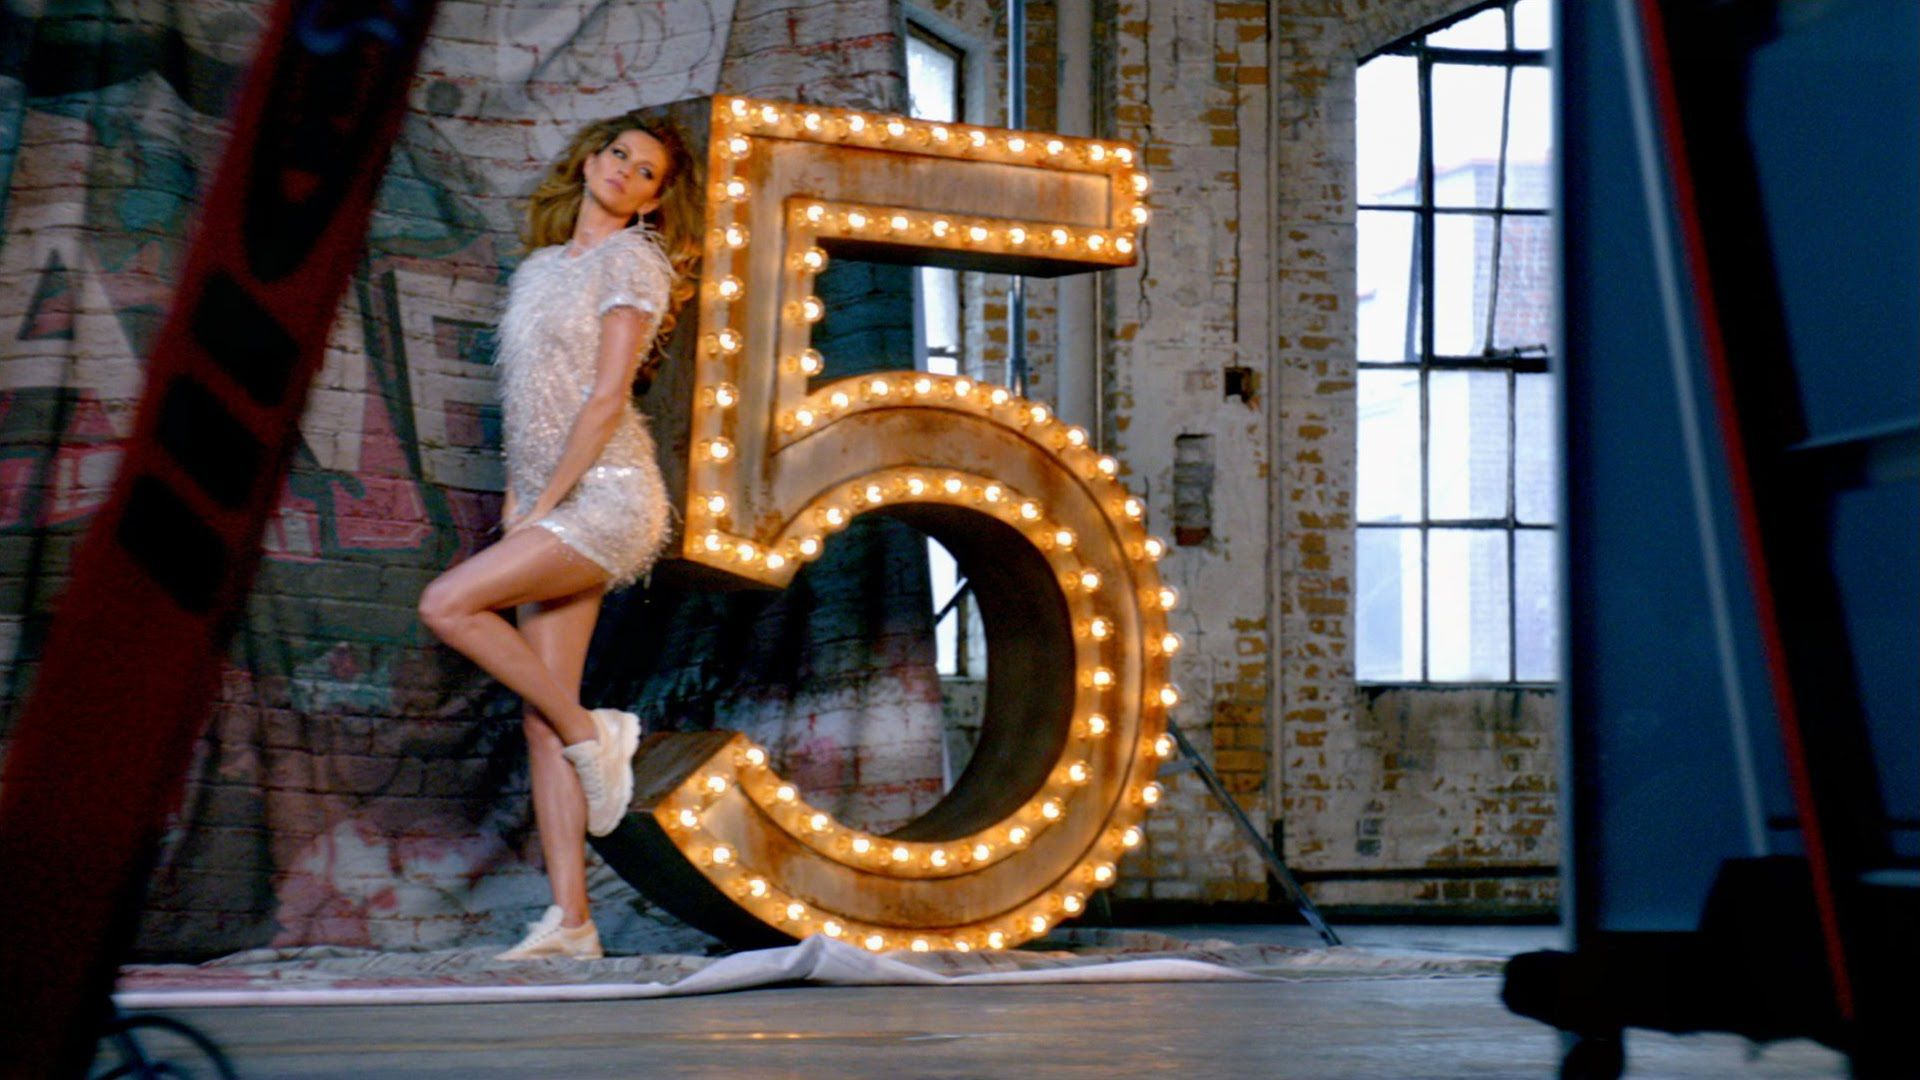 """CHANEL N°5 - The One That I Want - Directed by Baz Luhrmann - Starring: Gisele Bündchen, Michiel Huisman and Lo-Fang - Music: """"The One That I Want"""" performed by Lo-Fang"""